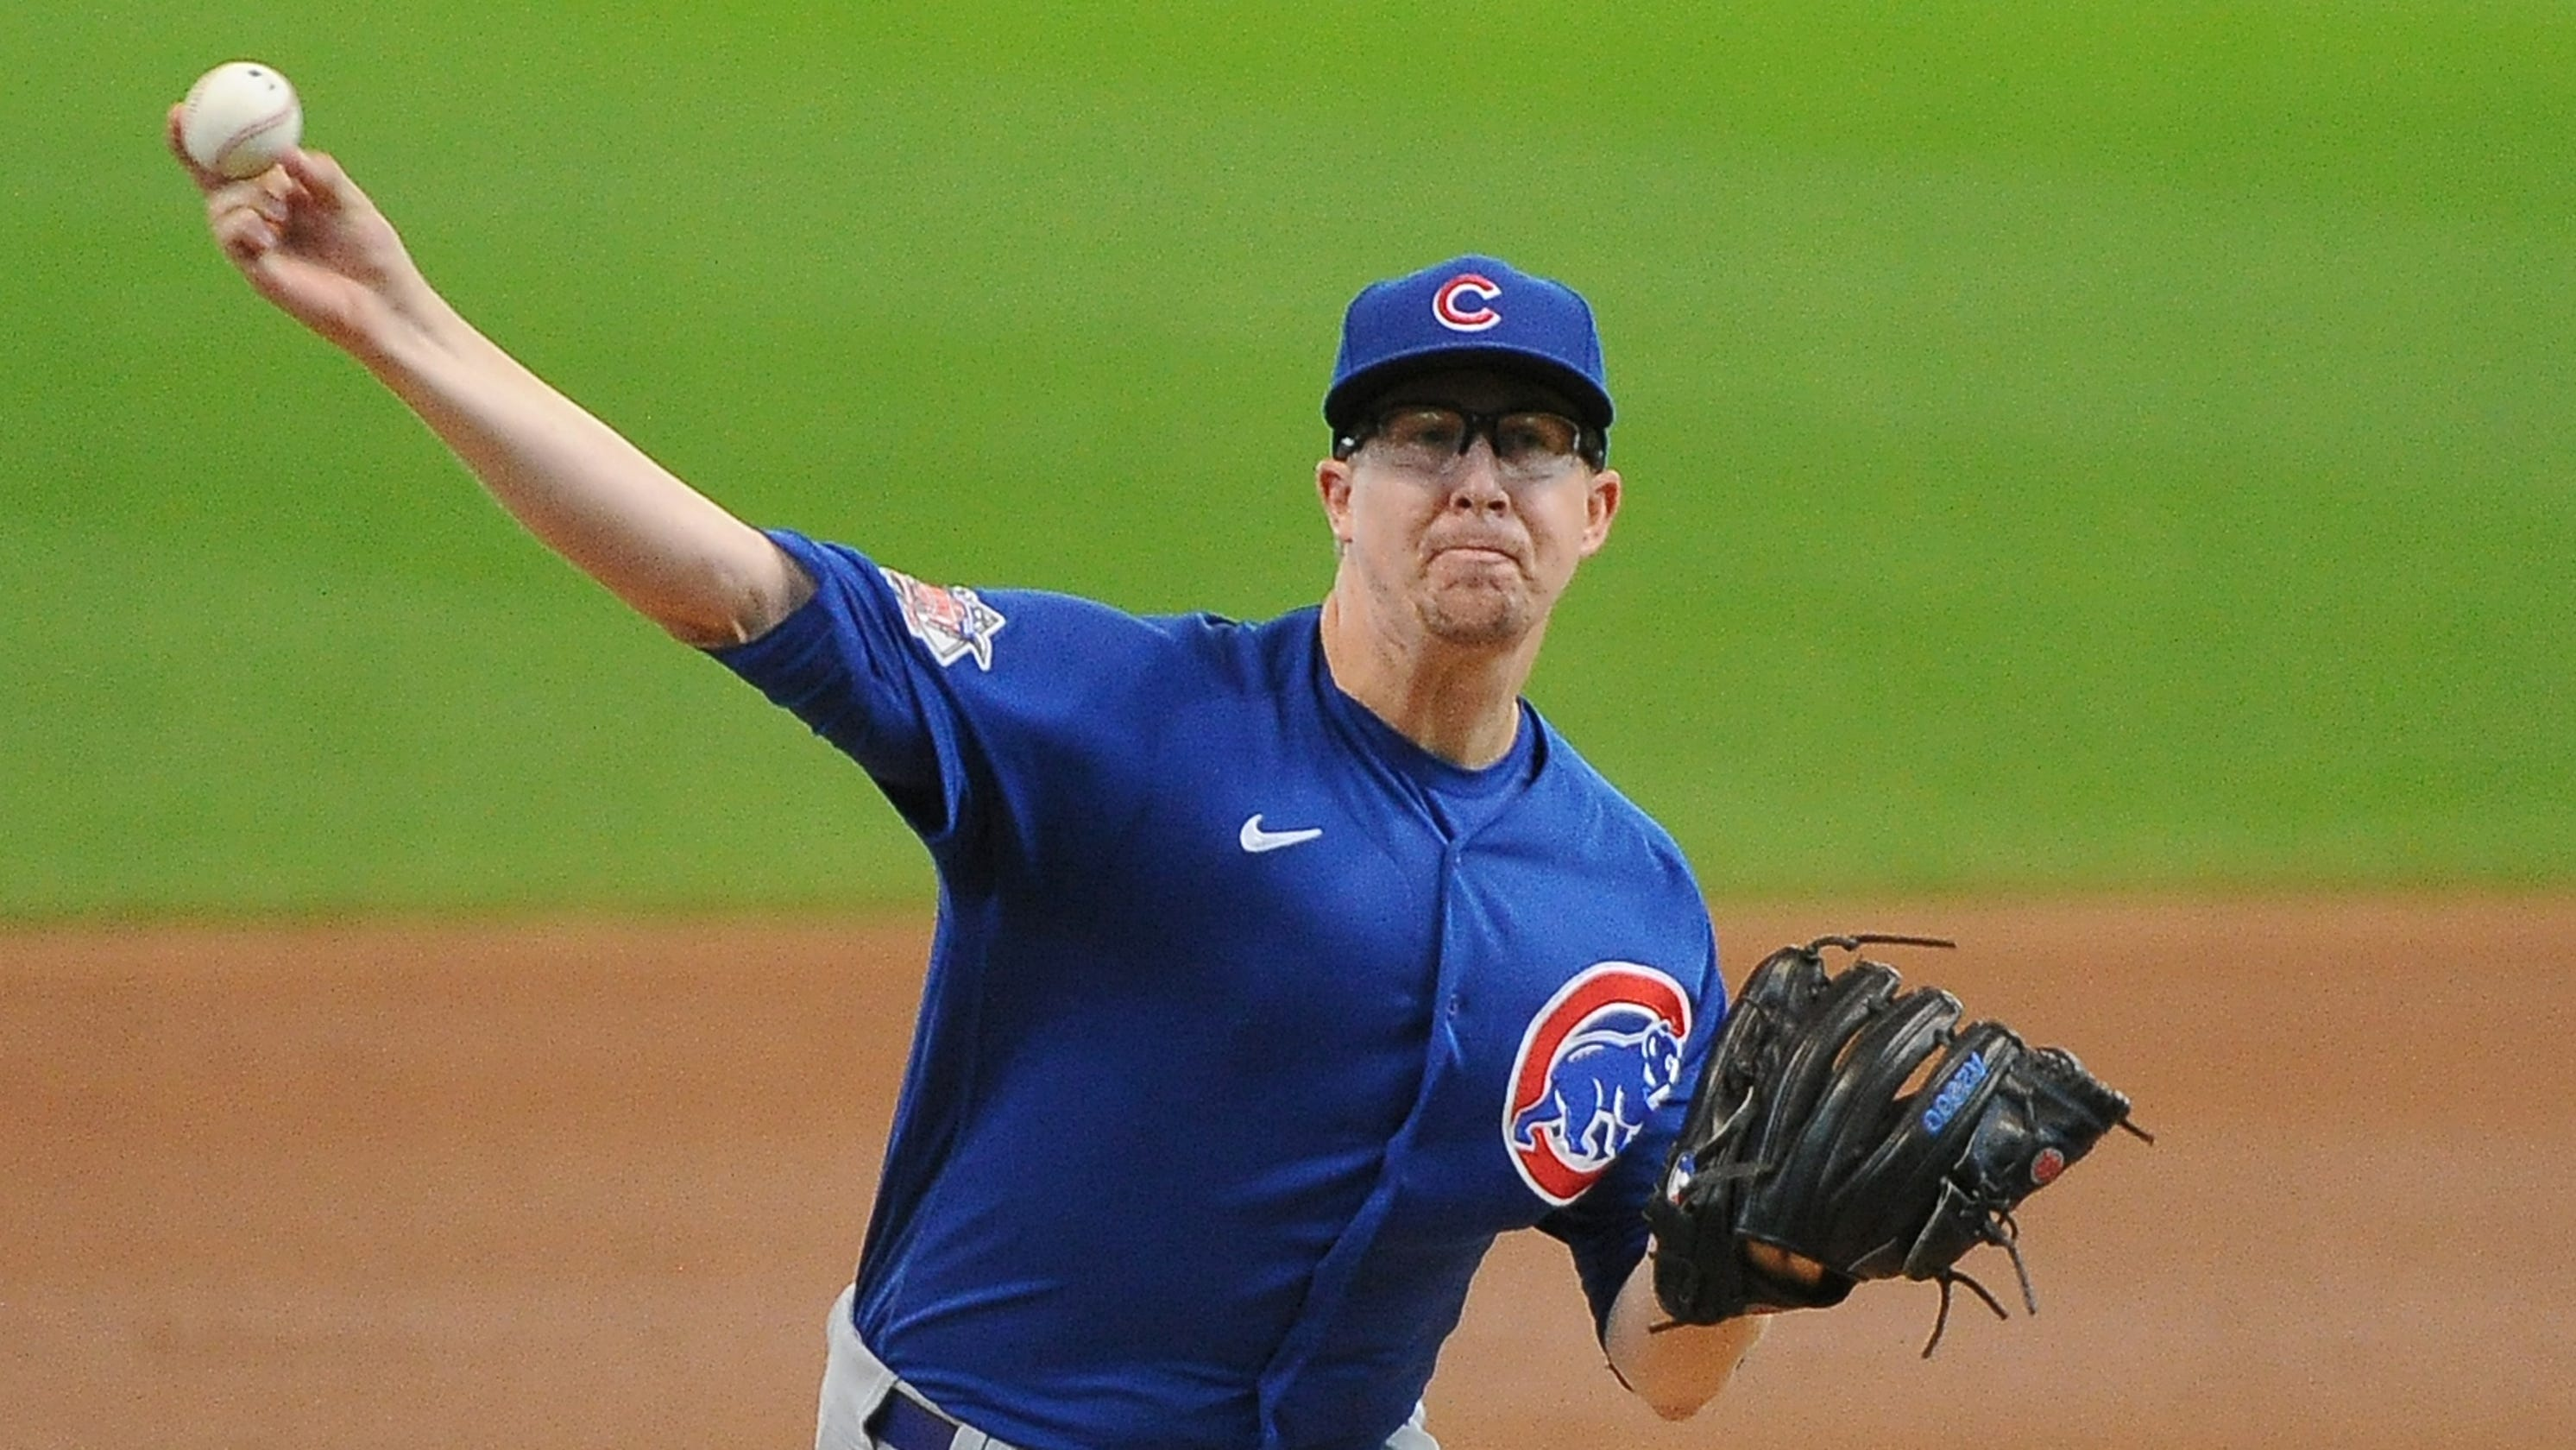 Cubs' Alec Mills hurls MLB's second no-hitter of 2020 in rout of Brewers